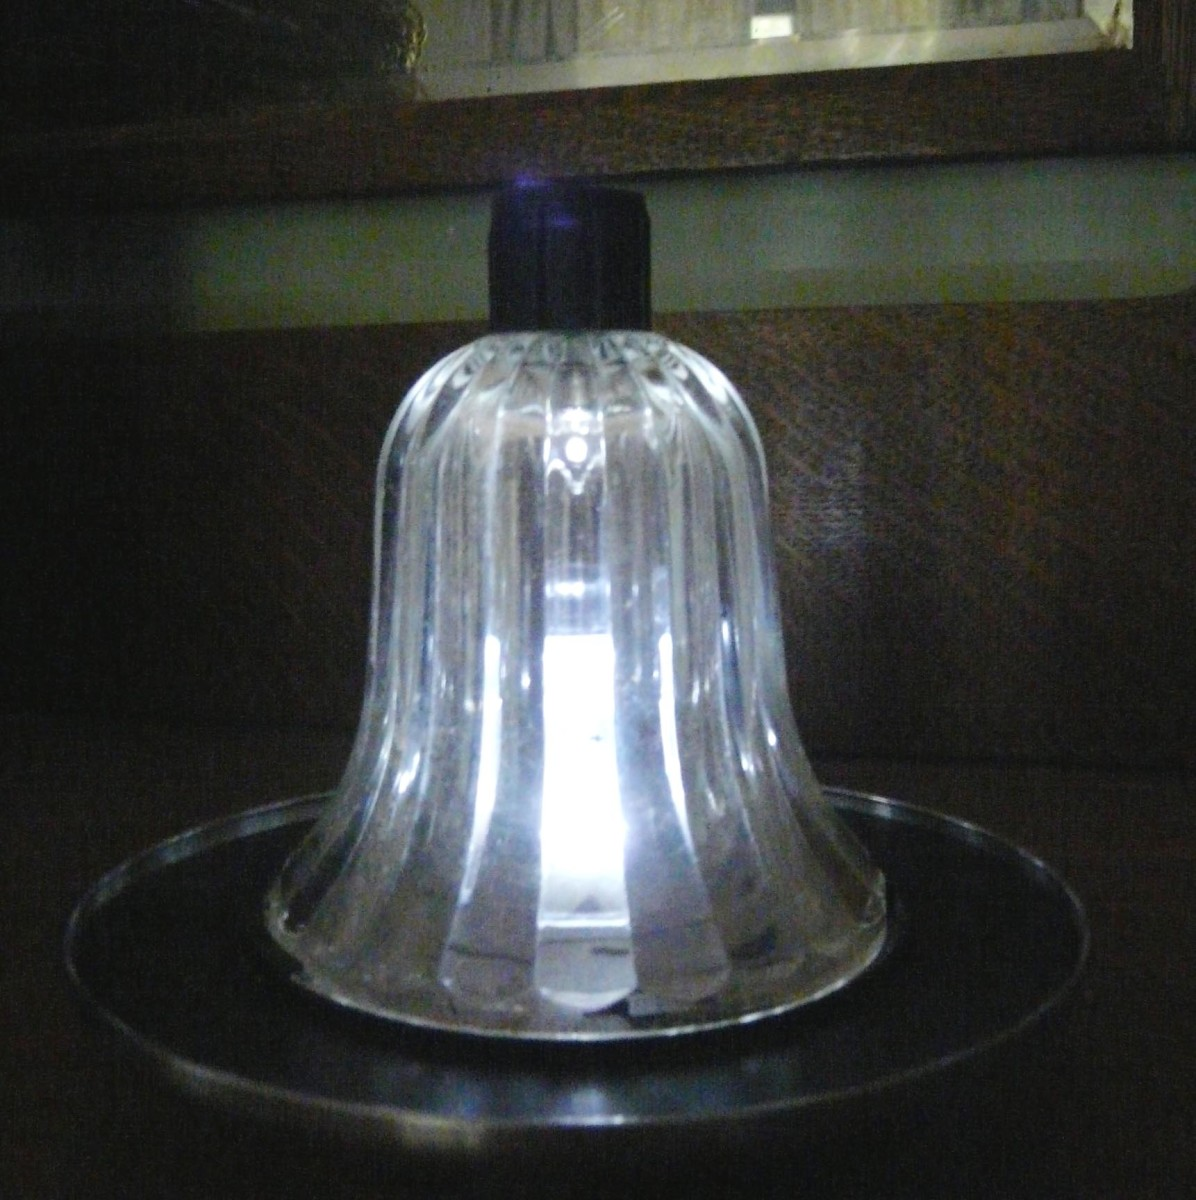 Solar lamp used for emergency light